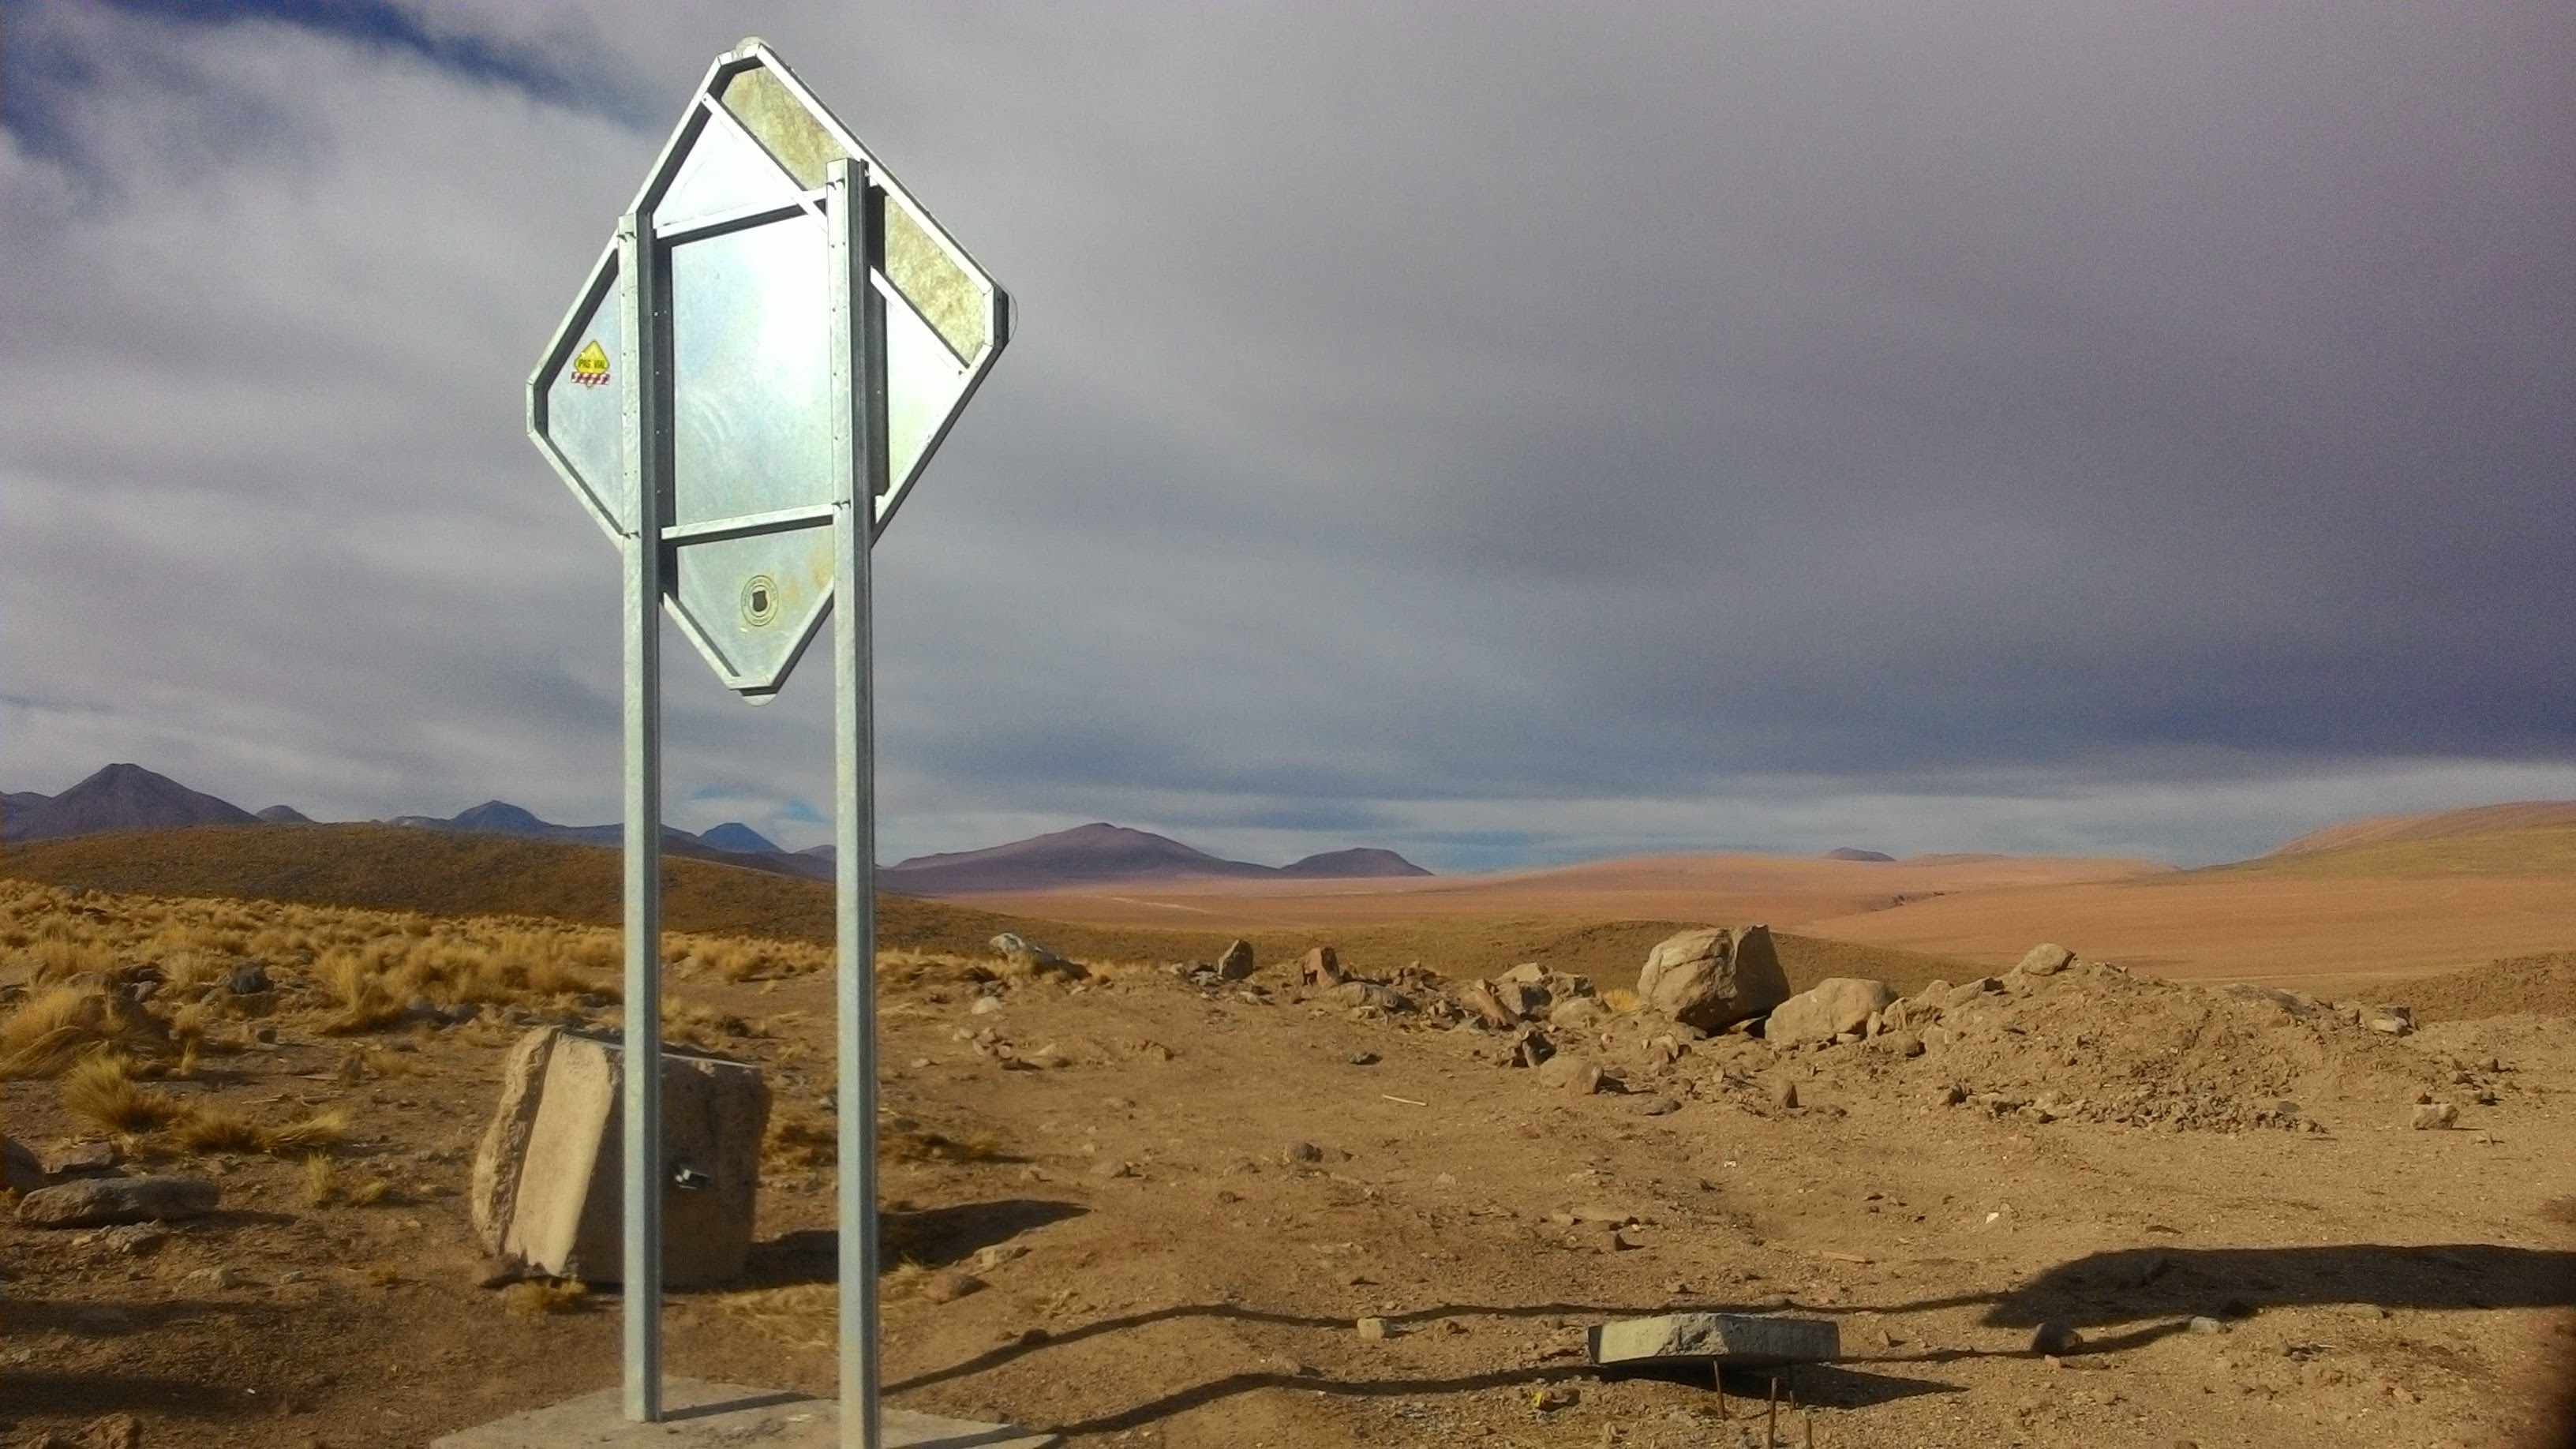 Welcome to the driest place on earth!